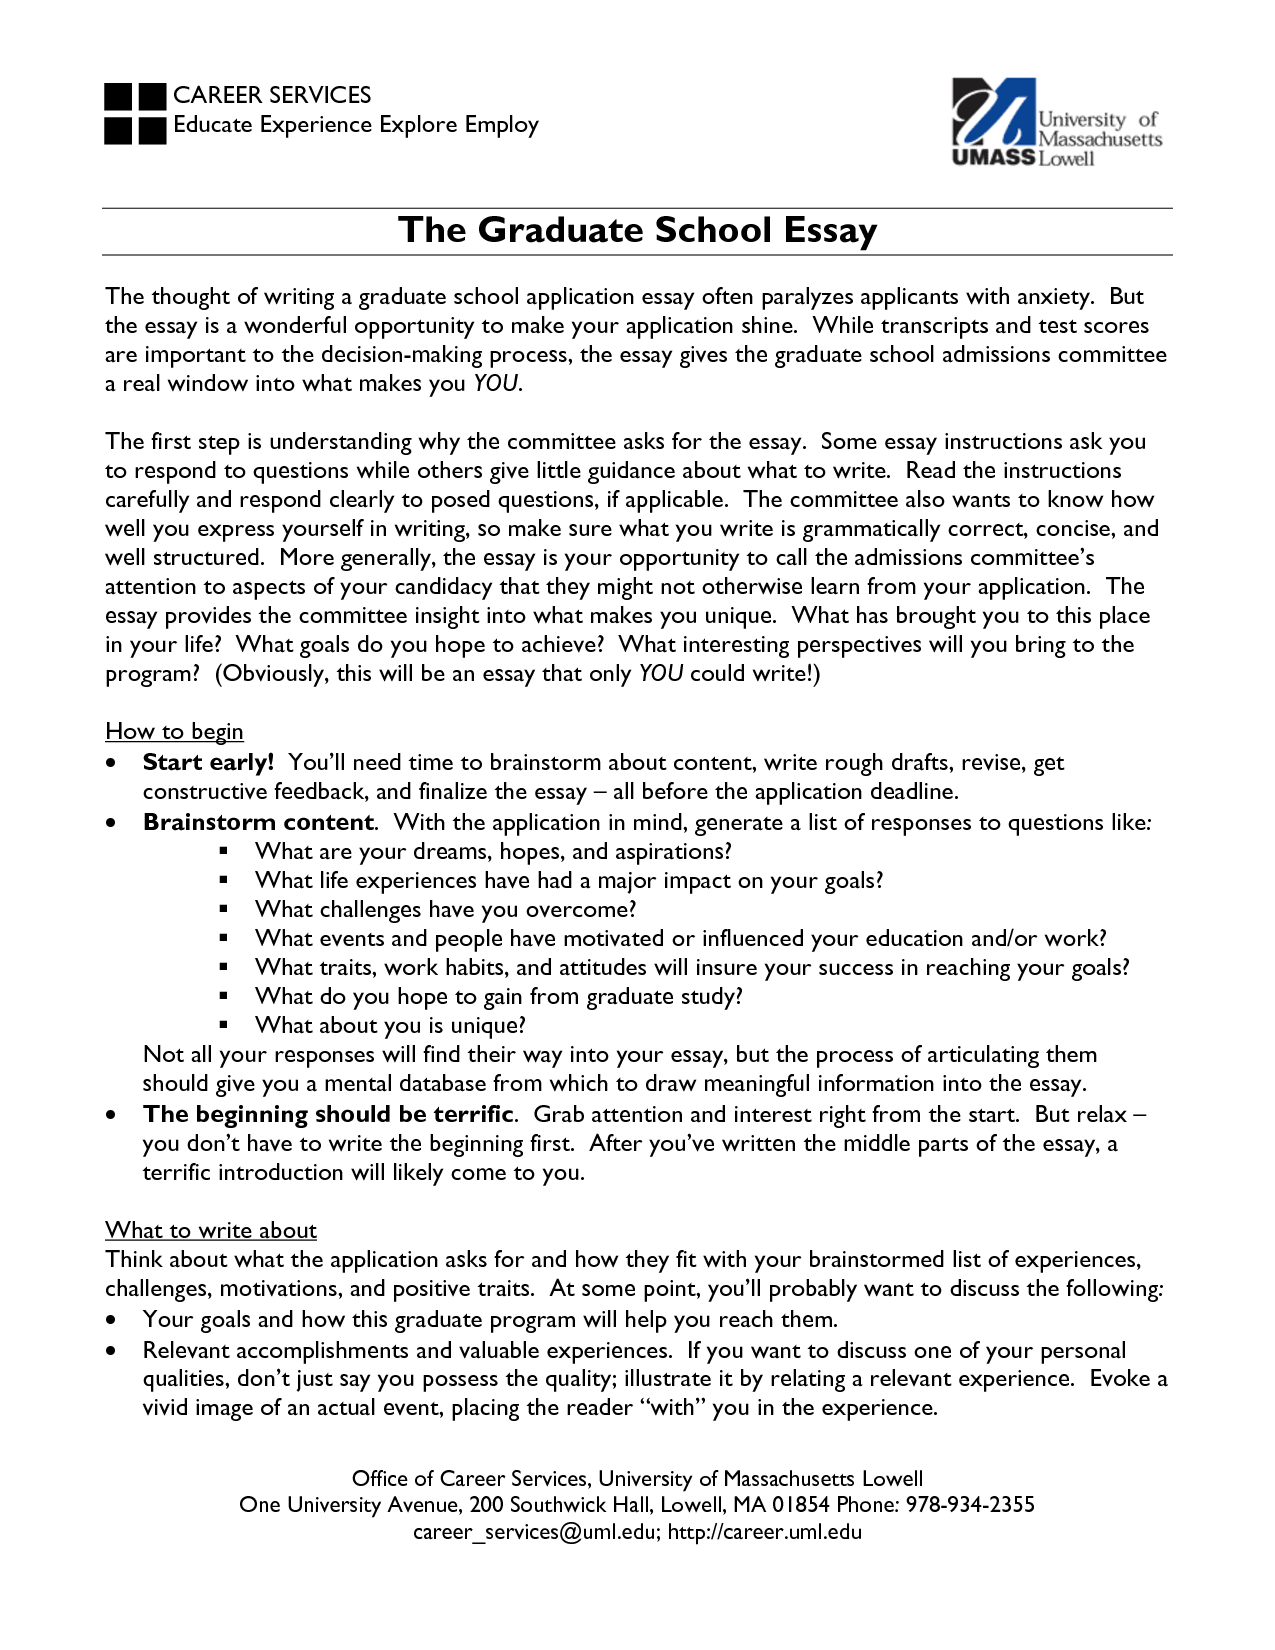 essay for graduate school application How to write an autobiographical essay for a graduate school application a traditional autobiography may be hundreds of pages and can cover dozens of mundane interactions in minute detail a graduate school autobiographical essay, however, should be much shorter and to the point, highlighting achievements and life events that are relevant to.